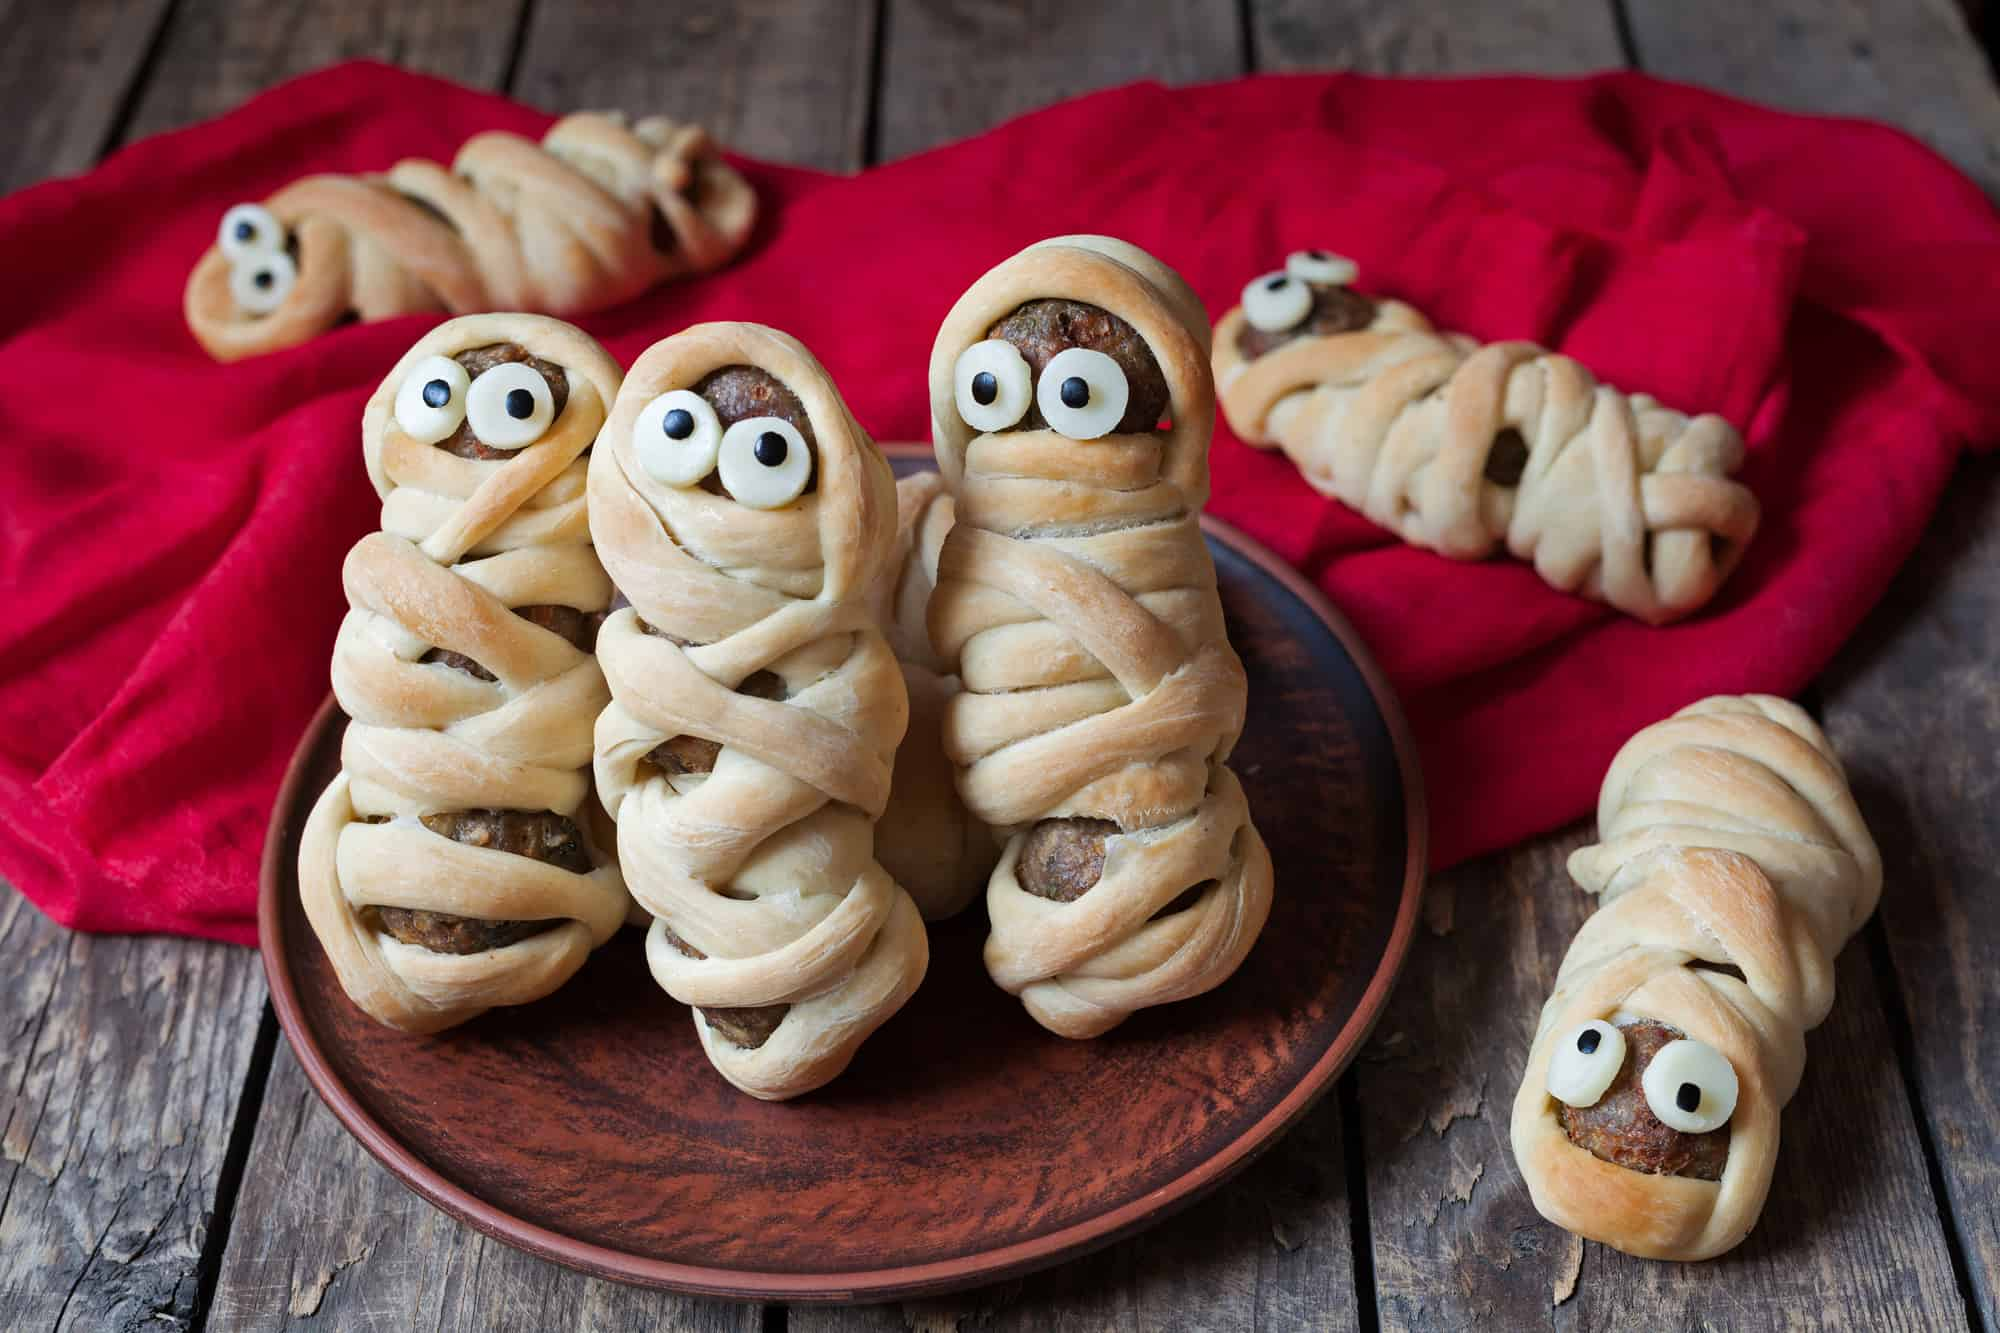 Halloween snack of small hot dogs wrapped like mummies in strips of dough.